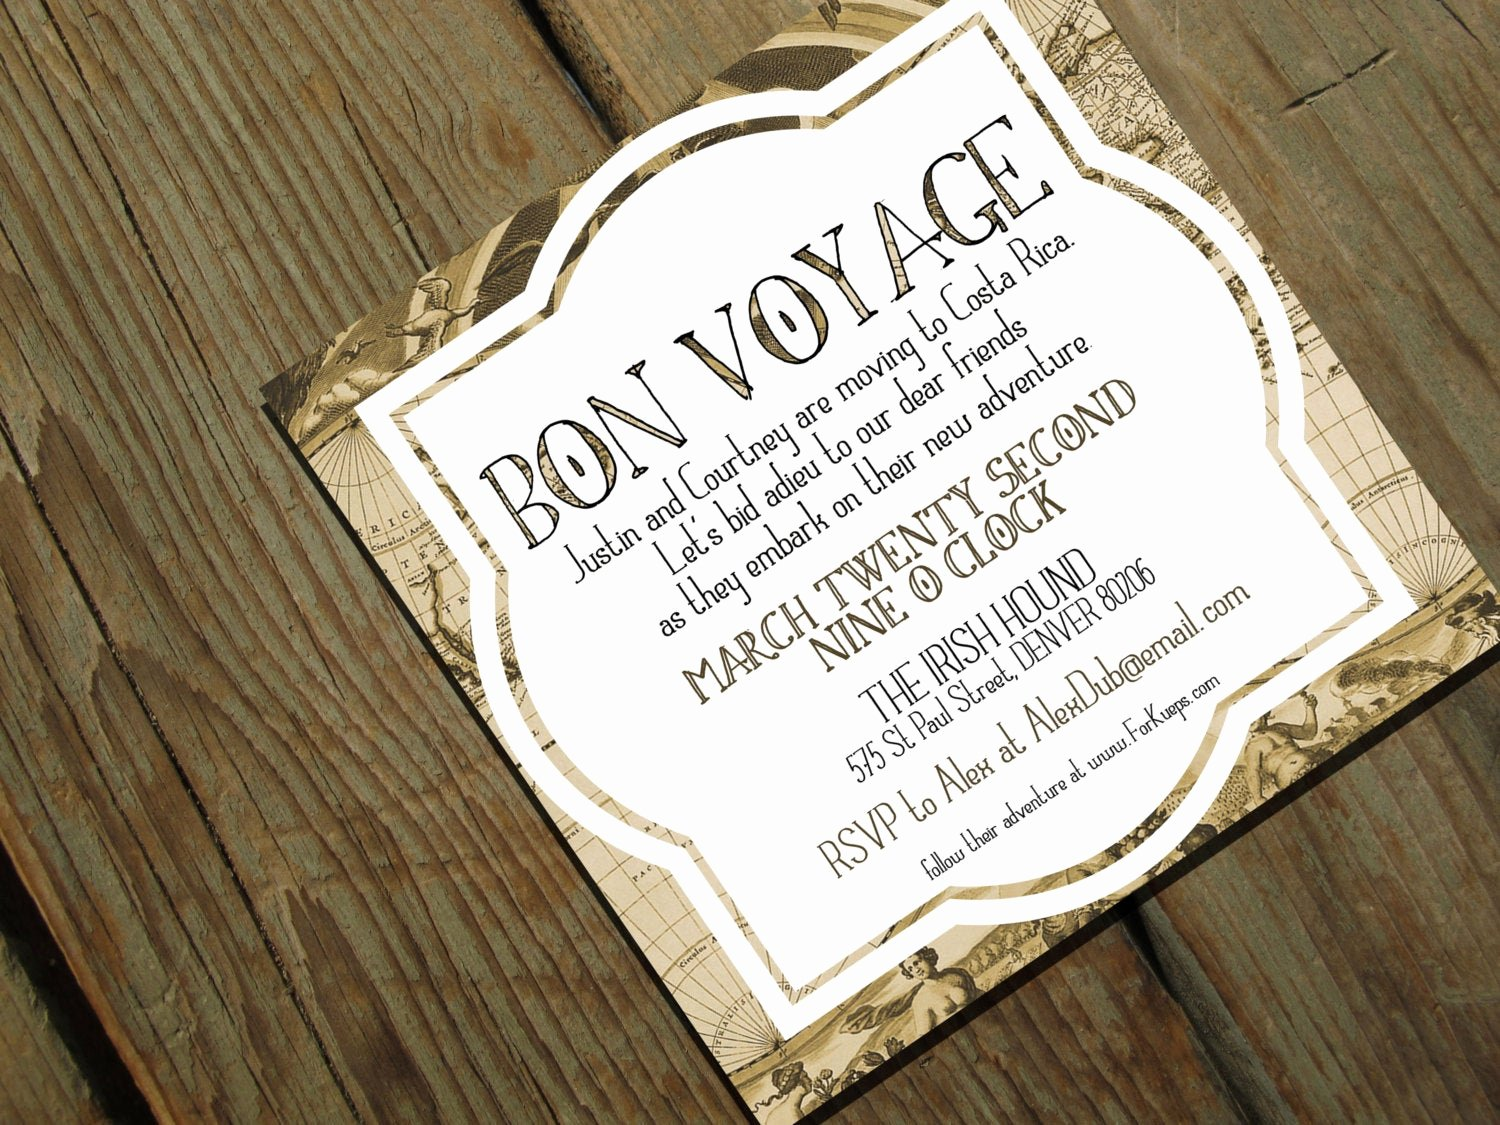 Farewell Party Invitation Wording Inspirational Bon Voyage Going Away Party Invitation Moving by